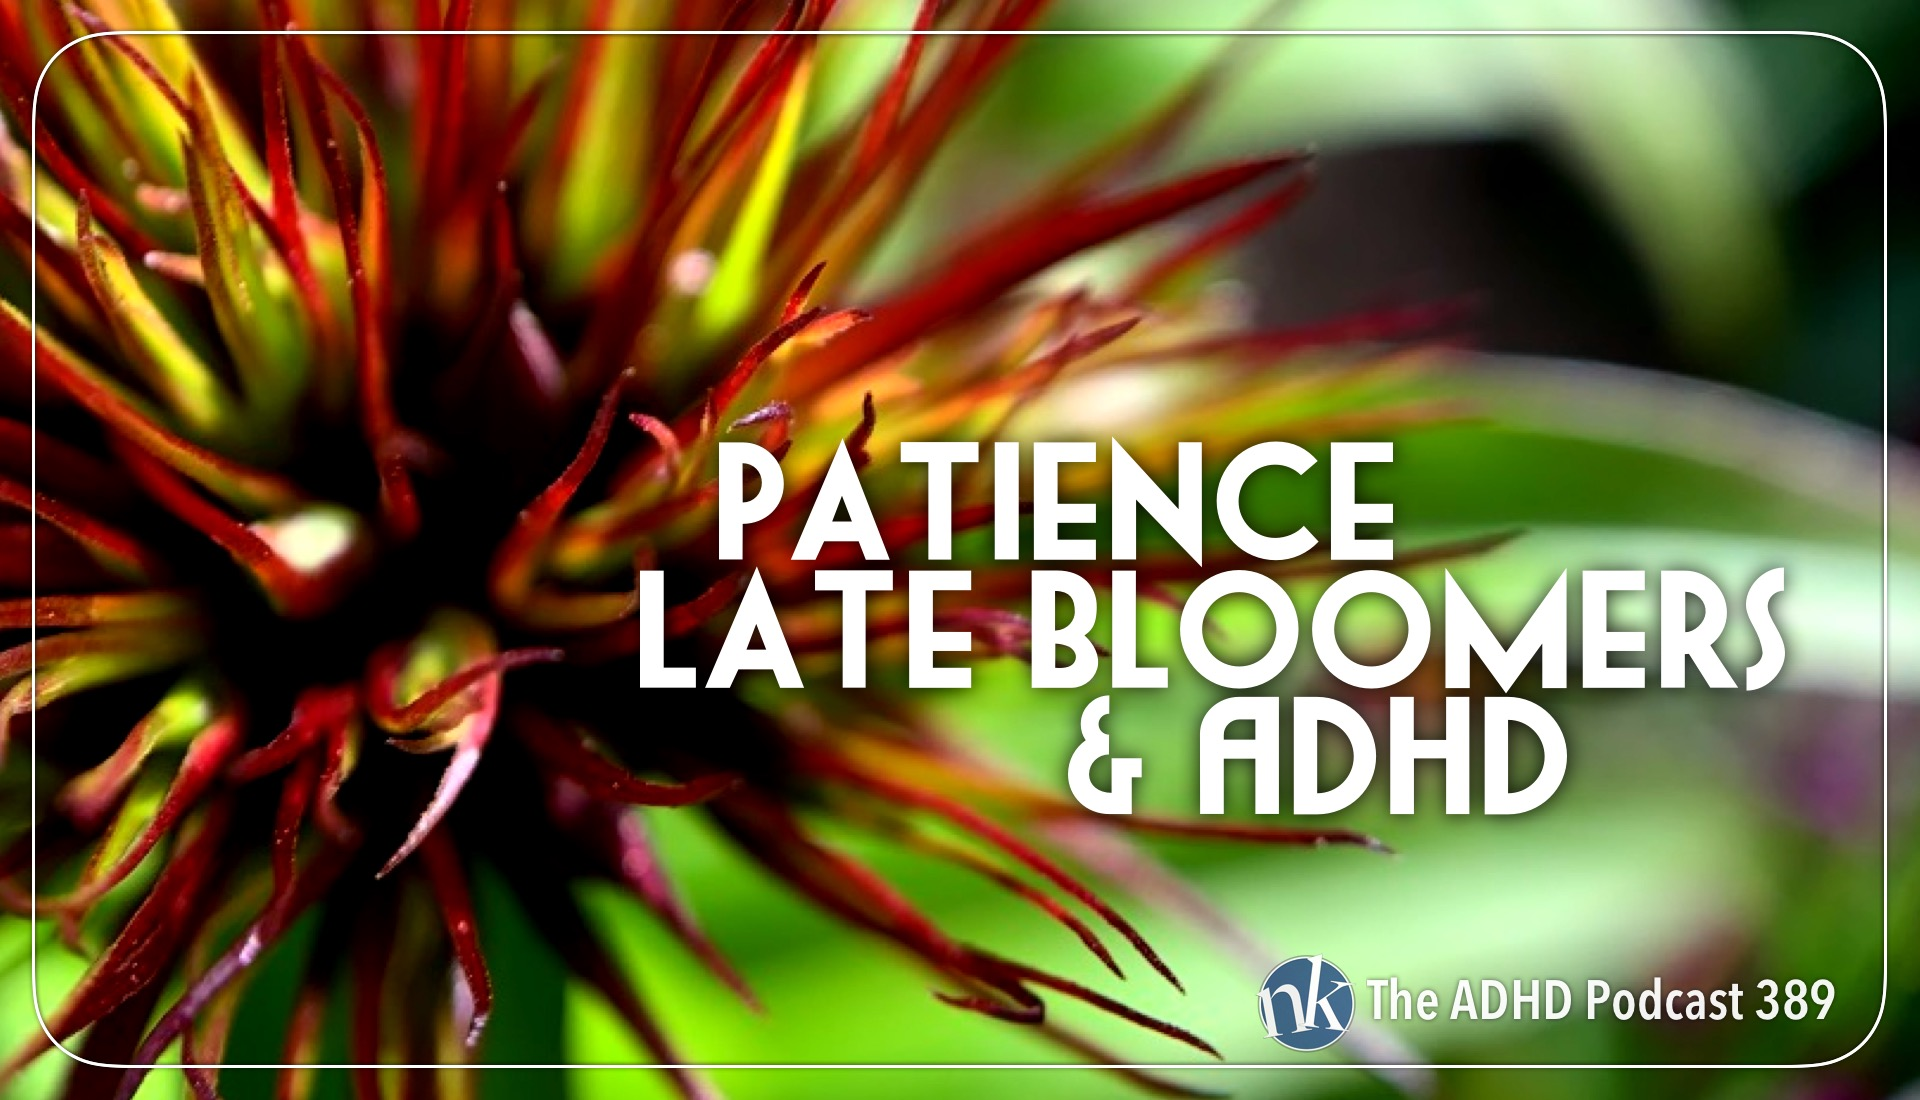 ADHD and Late Bloomers